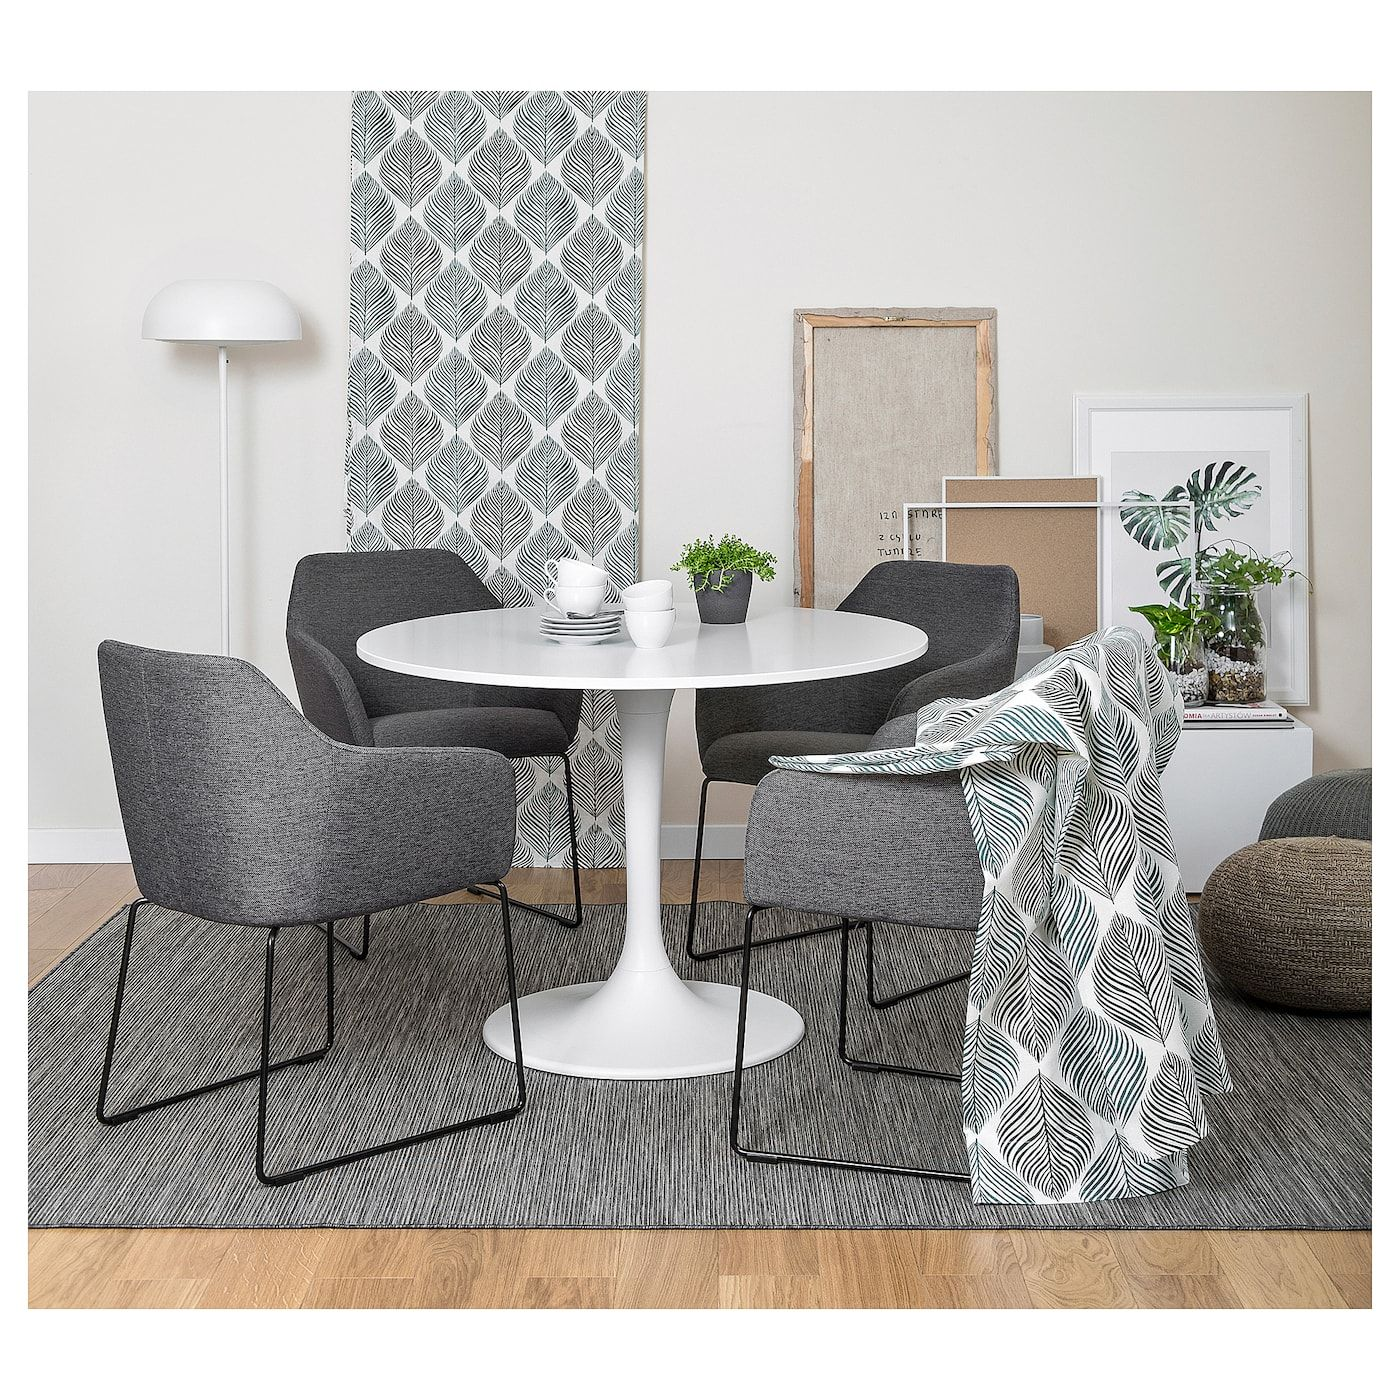 IKEA TOSSBERG Chair metal black, gray in 2020 World